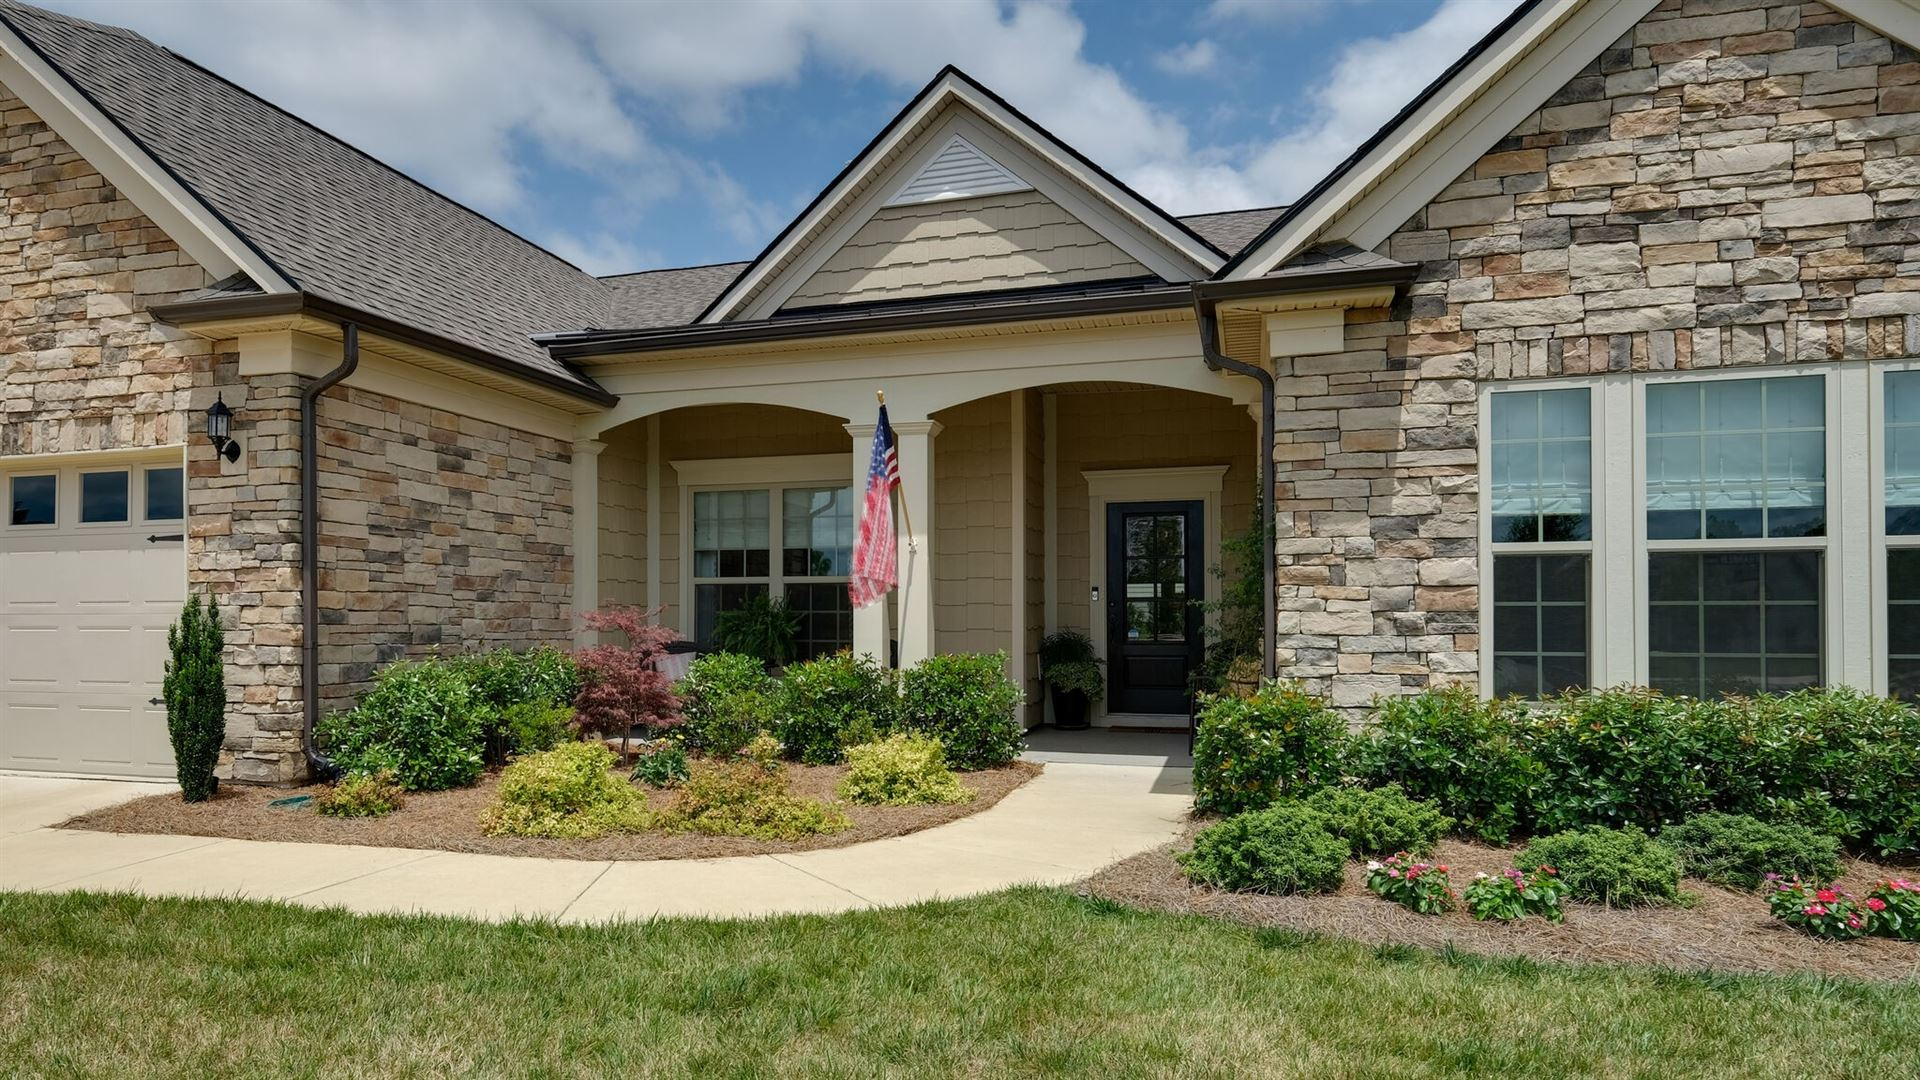 Photo of 209 Franklin Springs, Spring Hill, TN 37174 (MLS # 2165673)